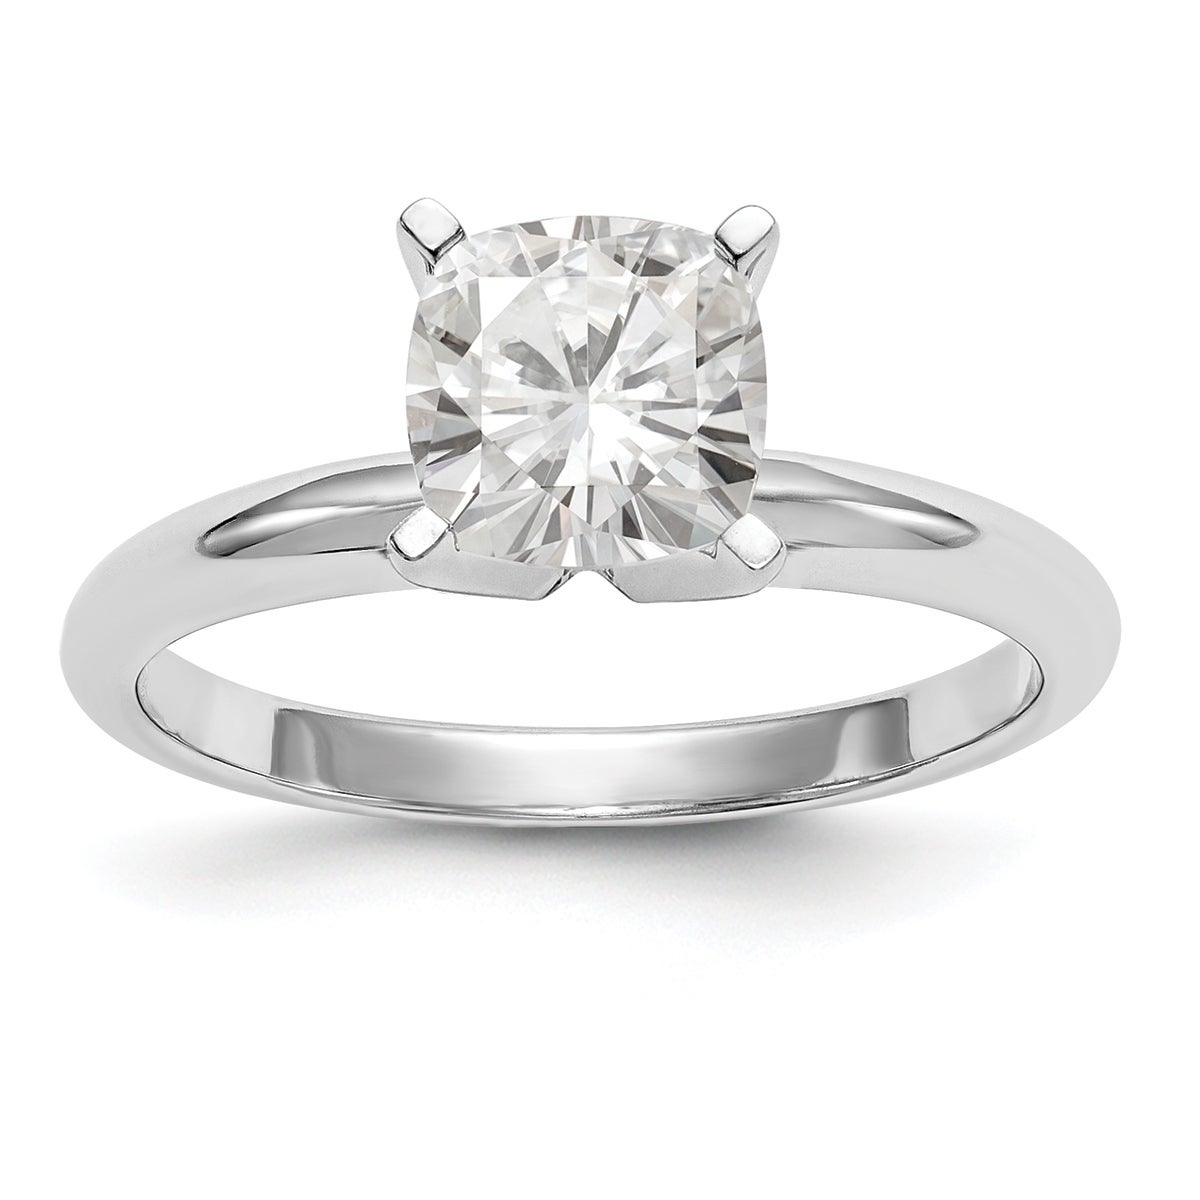 .75 ct tw Charles Colvard 6mm Moissanite 14k Yellow Gold Solitaire Ring Size 6